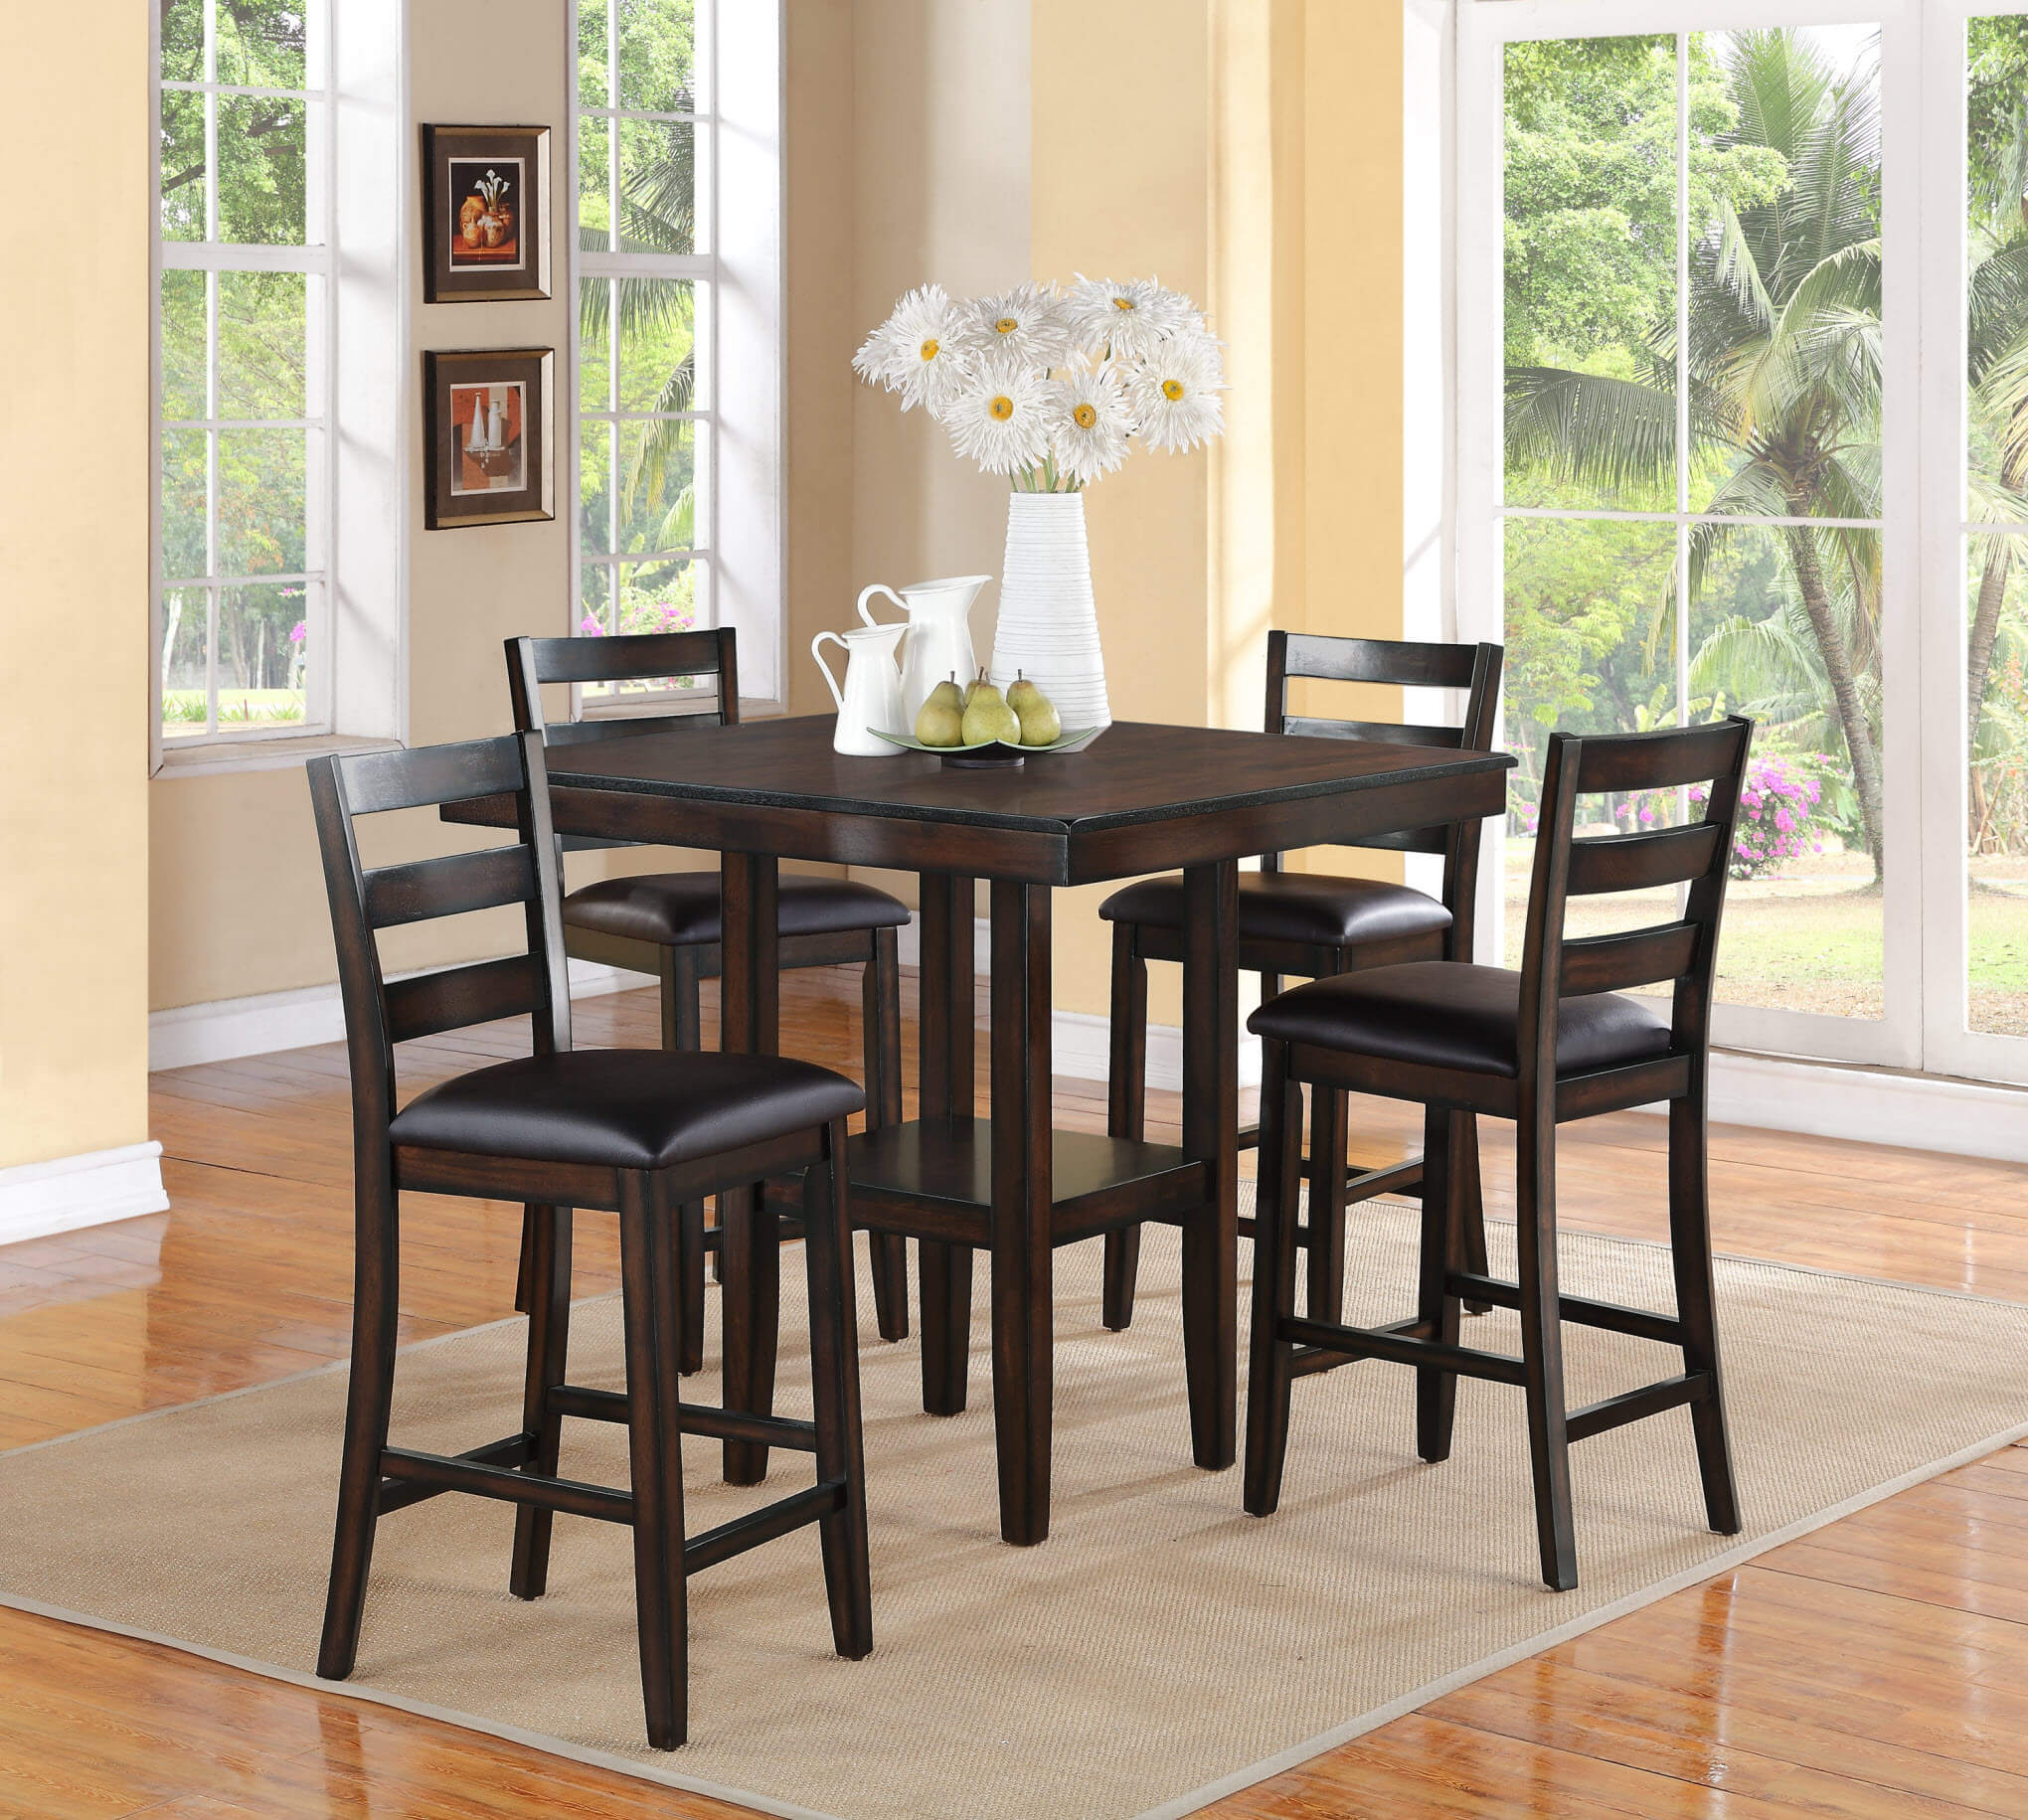 Counter Dining Room Sets: Dining Room Furniture Sets